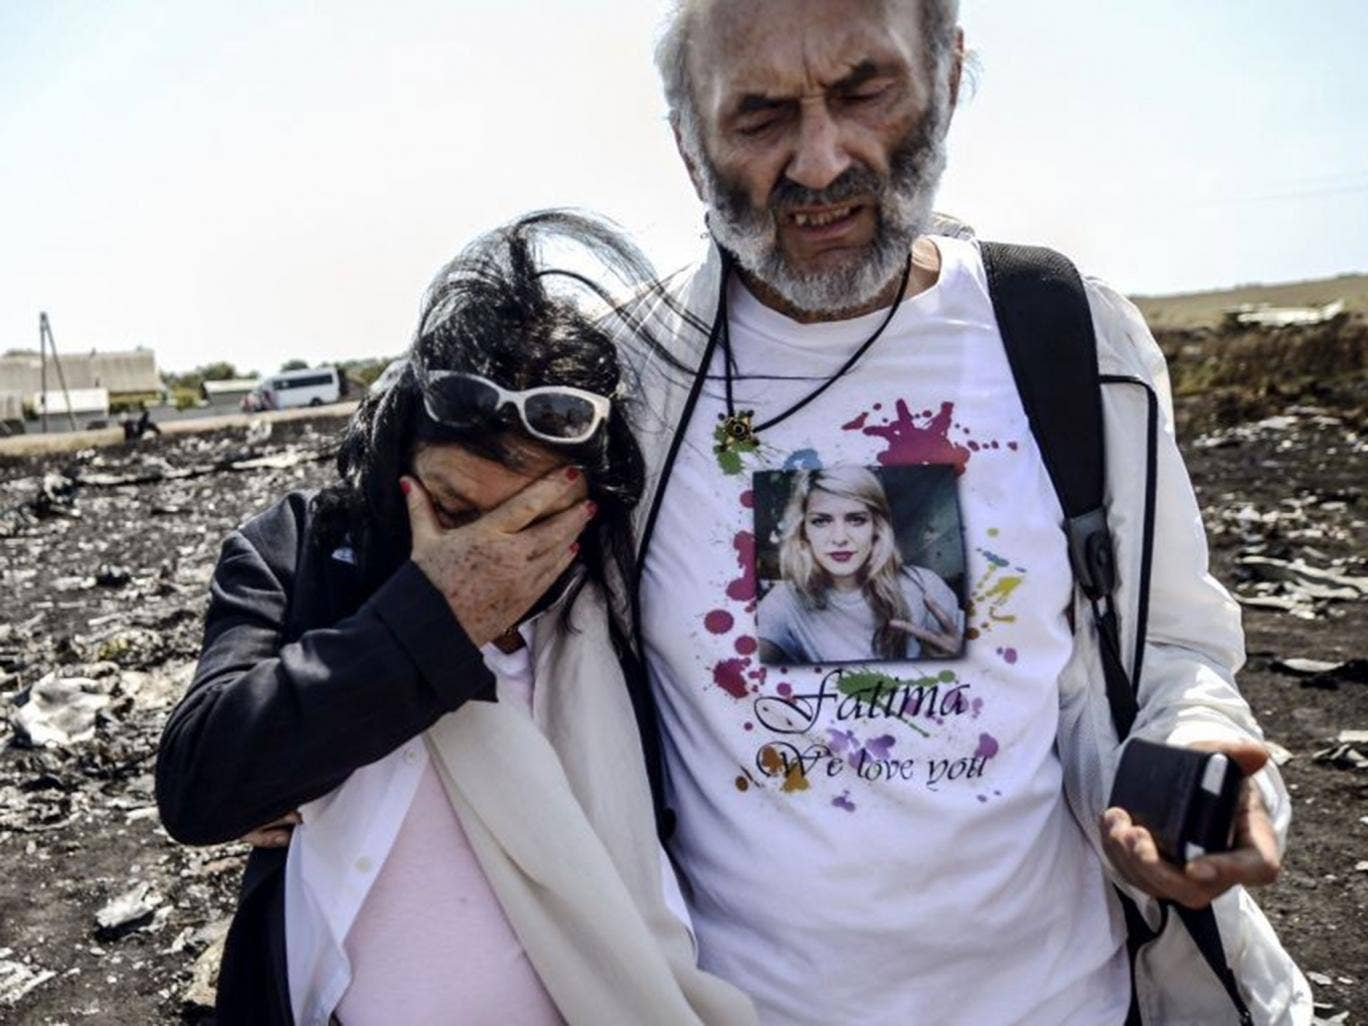 Jerzy Dyczynsk (R) and Angela Rudhart-Dyczynski from Australia react as they arrive on July 26, 2014 at the crash site of the Malaysia Airlines Flight MH17 to look for their late daughter Fatima